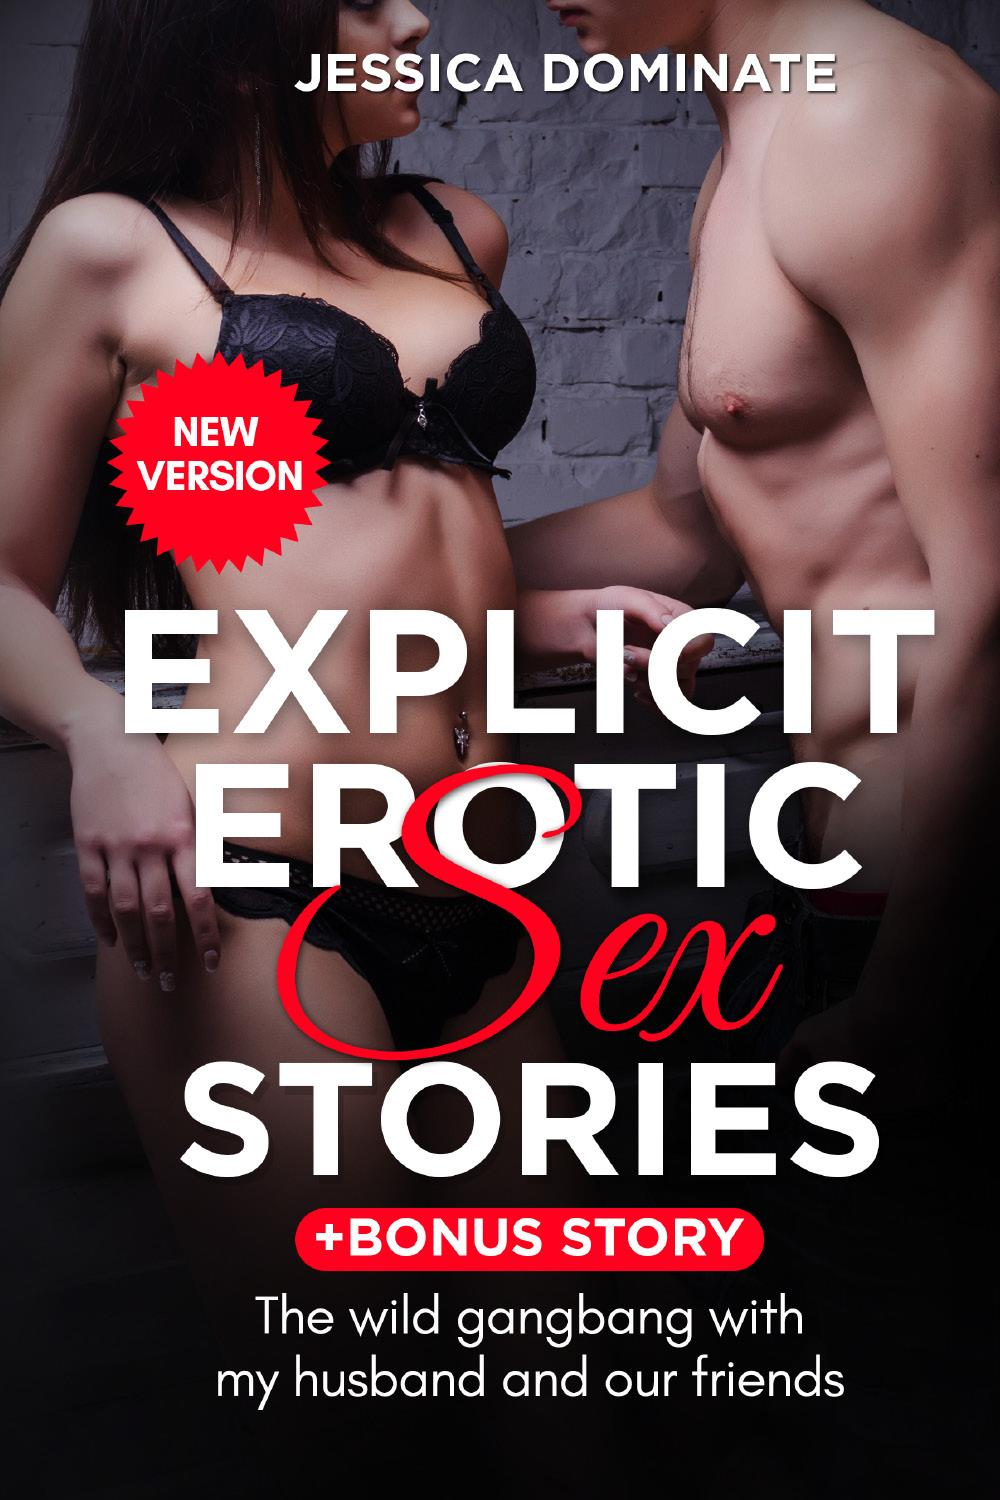 Explicit Erotic Sex Stories + Bonus Story. The wild gangbang with my husband and our friends (New Version)